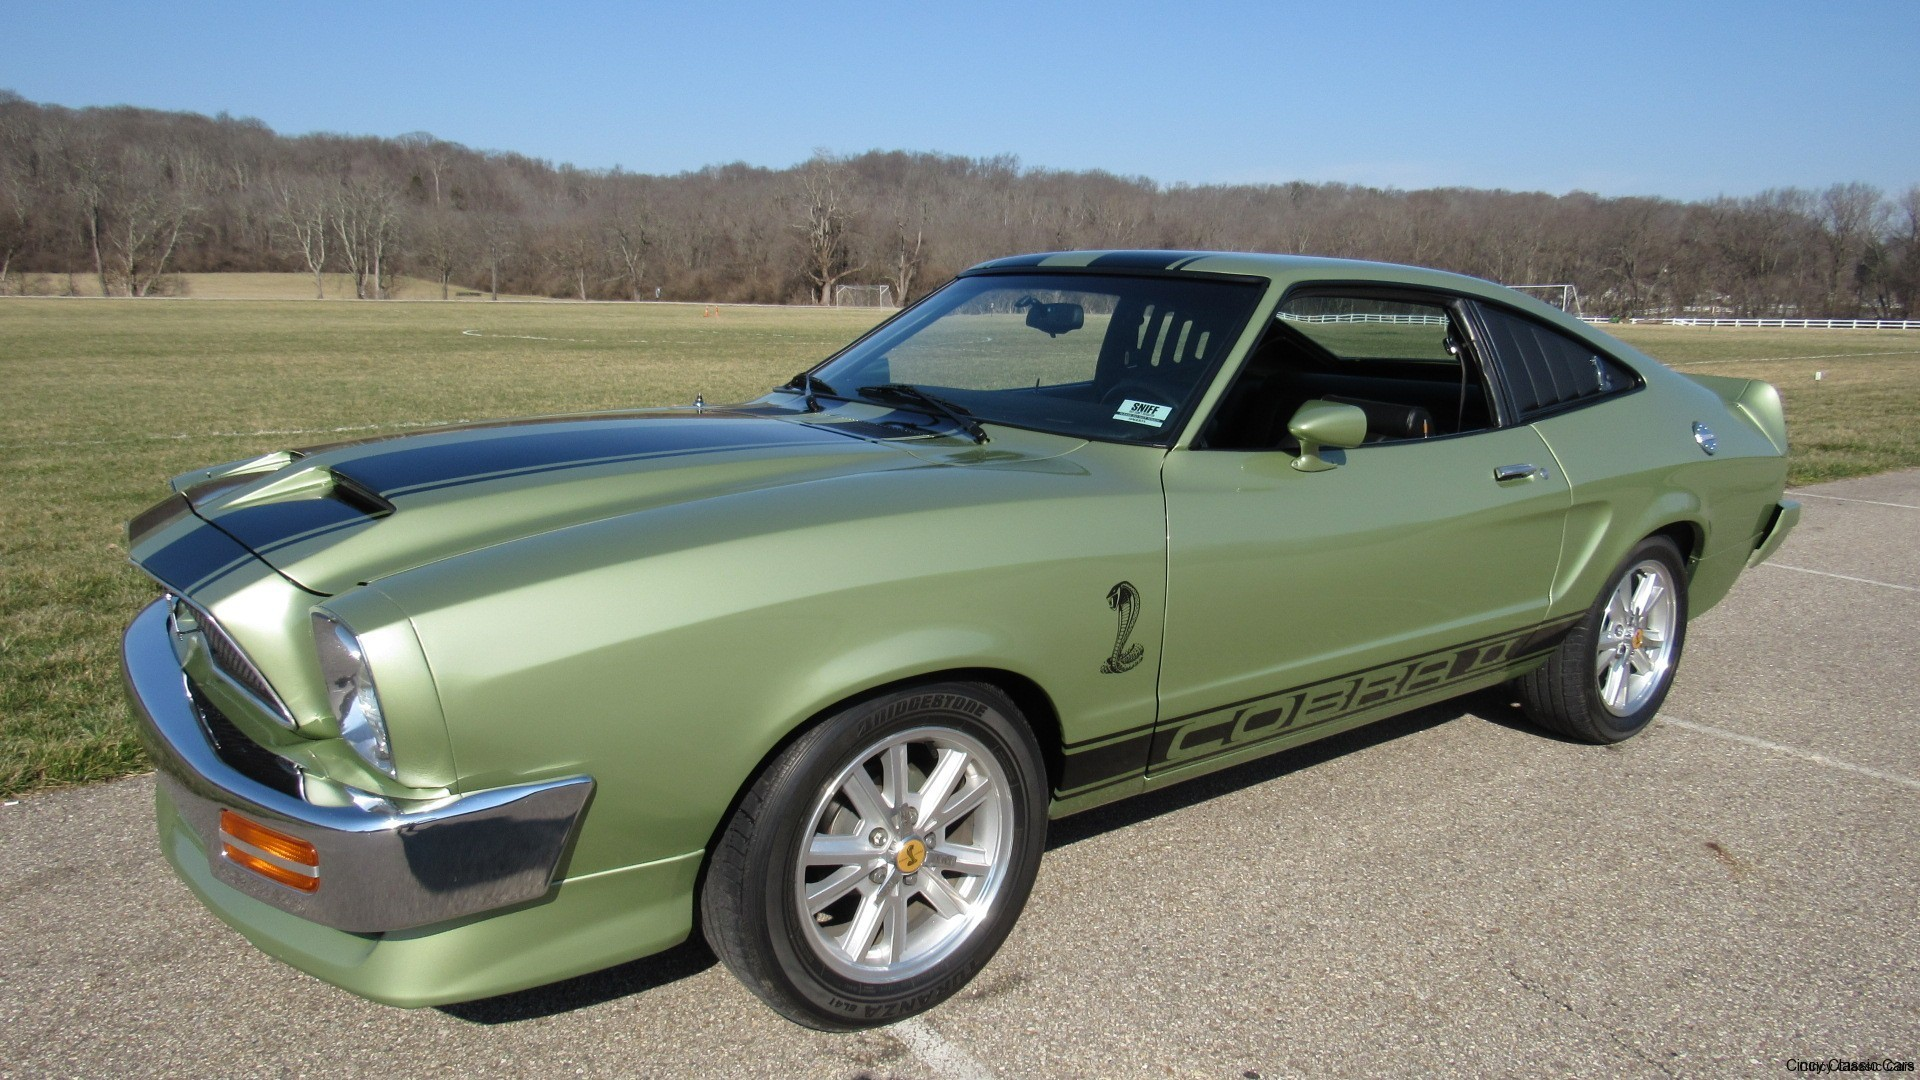 1977 mustang cobra ii sold cincy classic cars - Mustang cobra ...